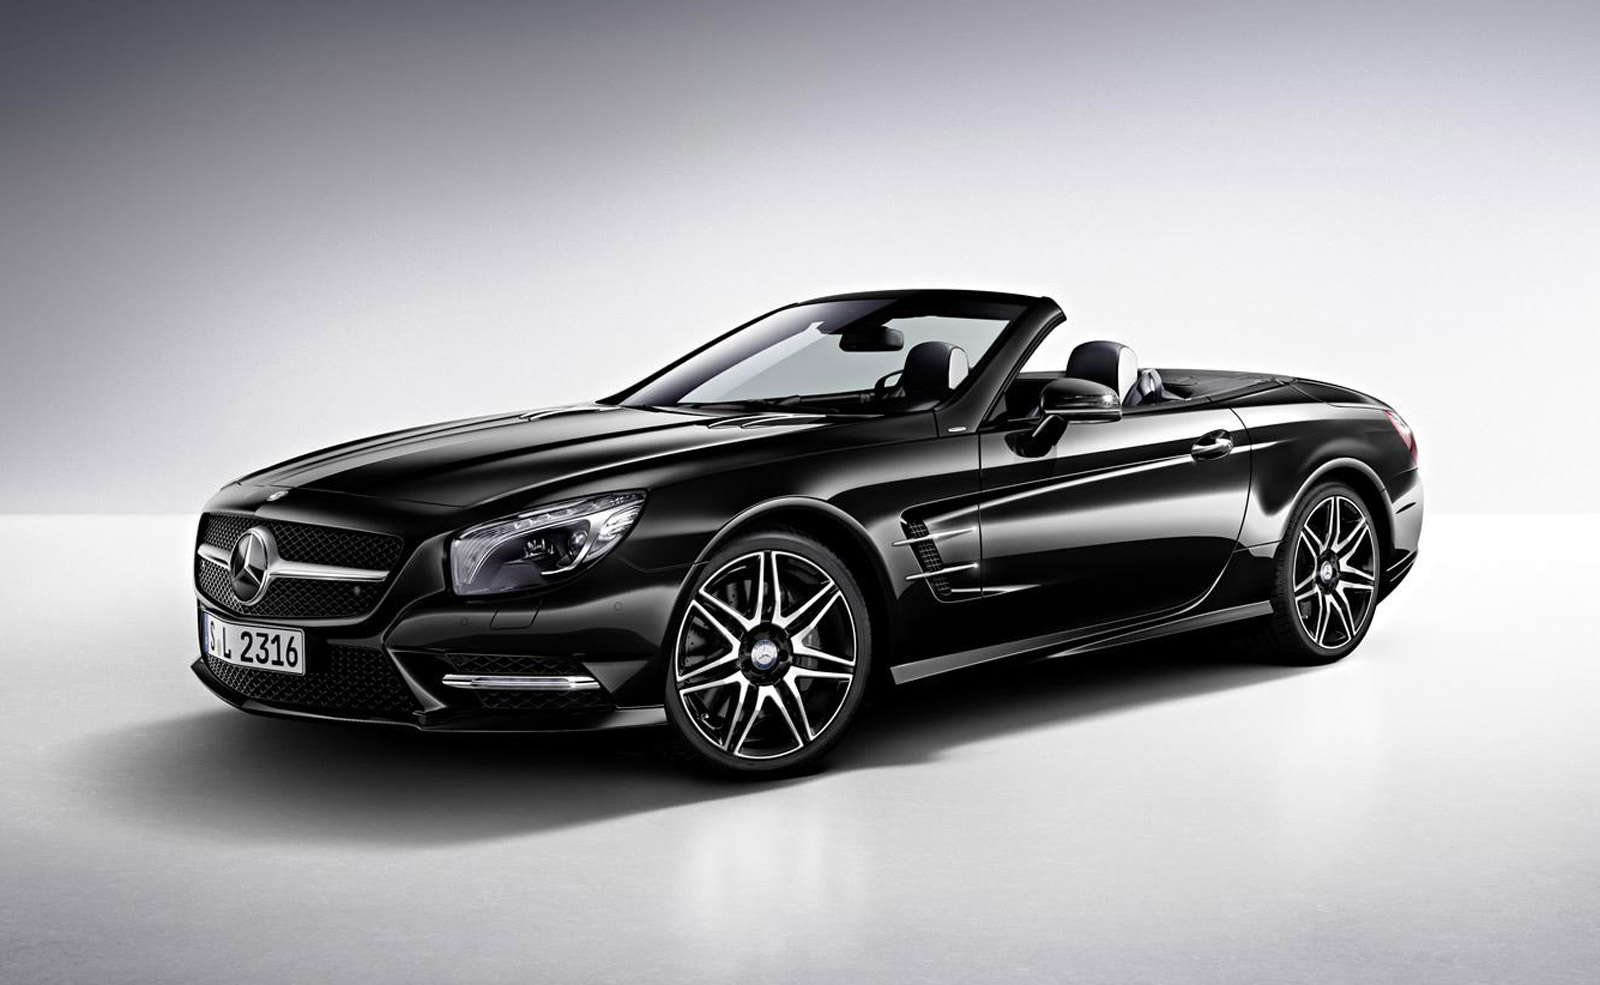 2015 mercedes sl class sees price drop with new v 6 variant for Mercedes benz sl500 price